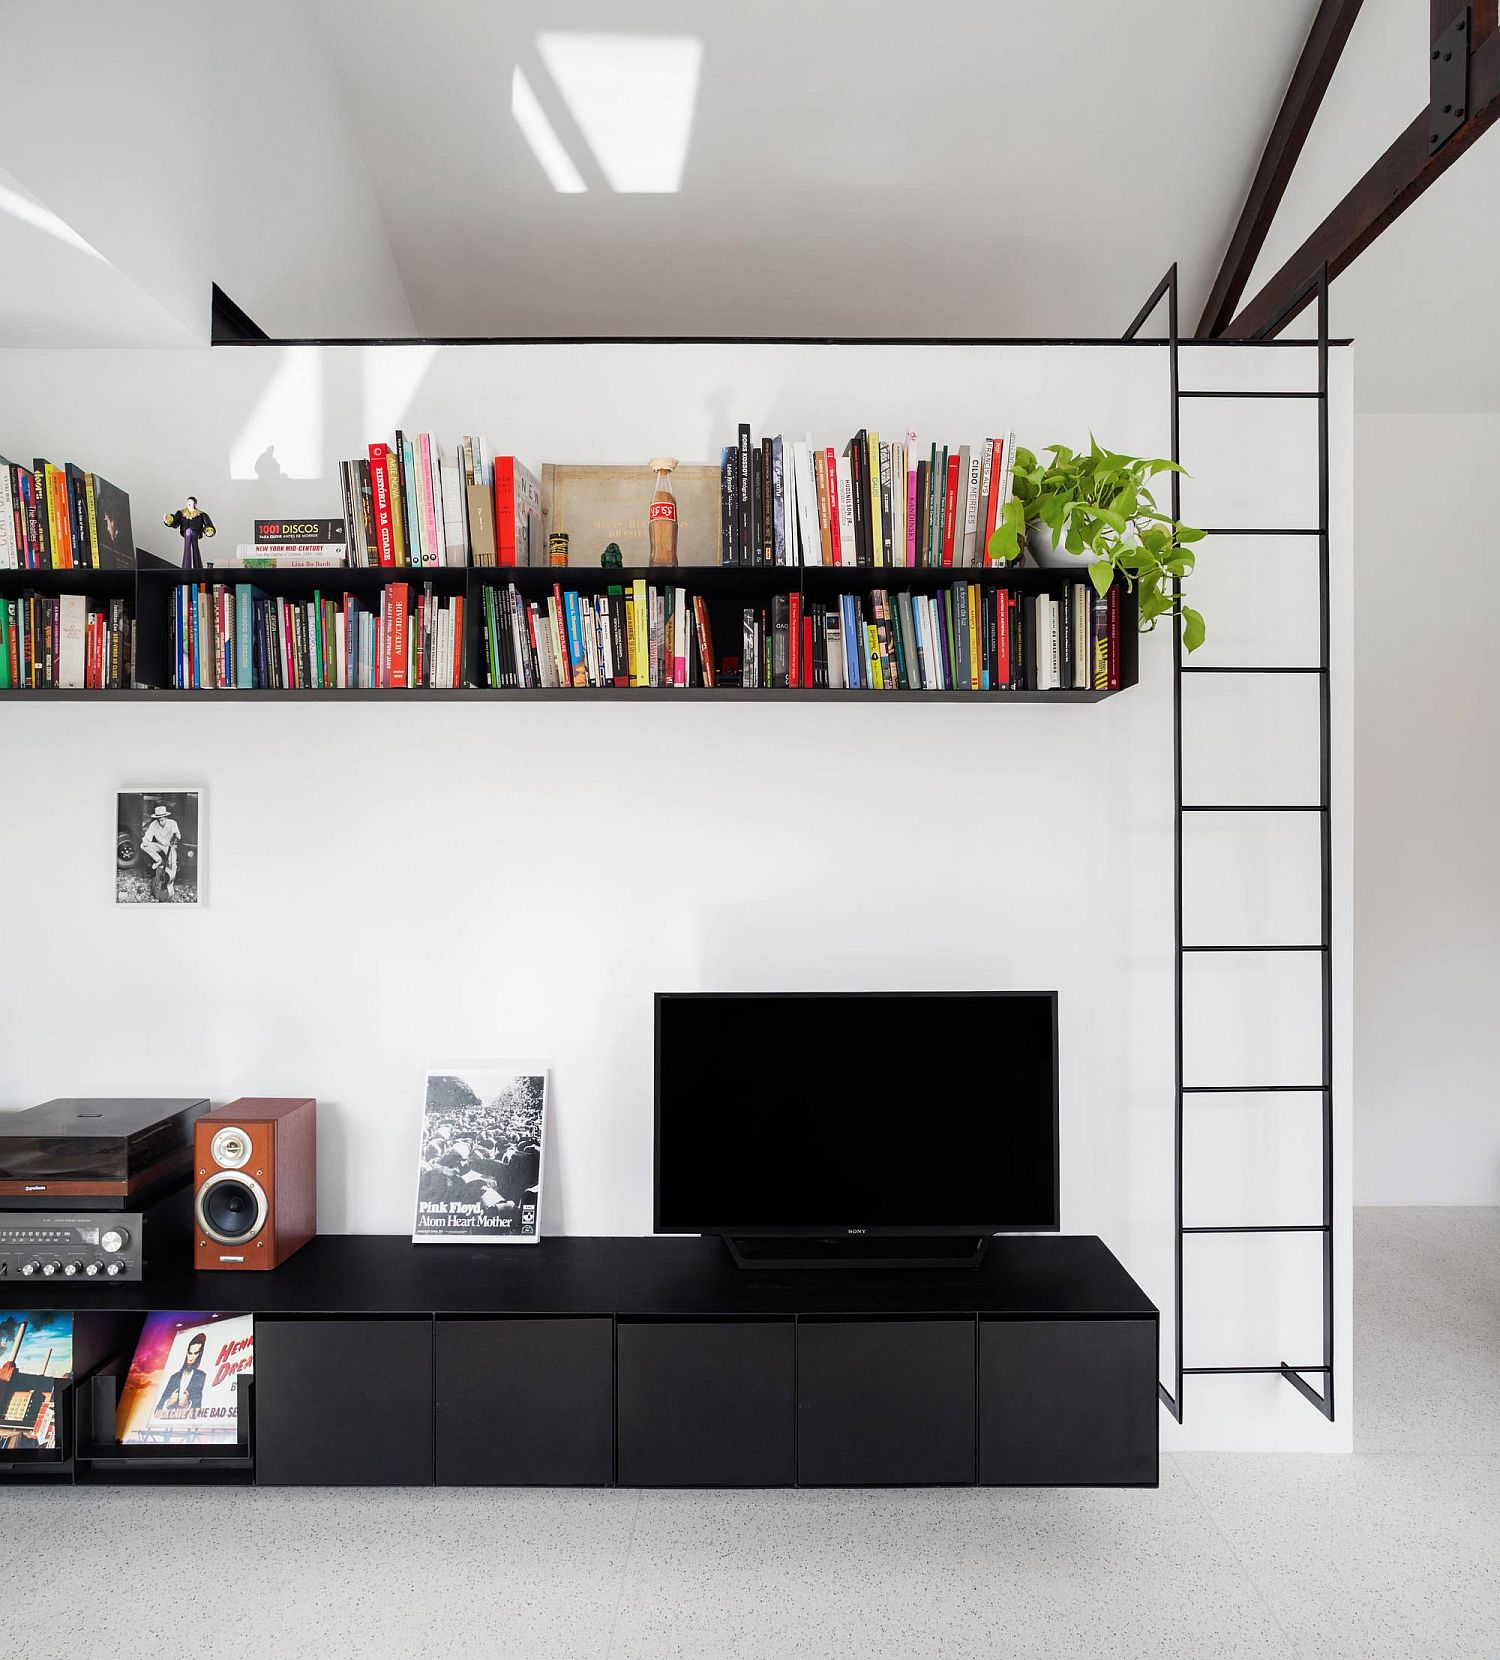 50 Tiny Apartment Storage and Shelving Ideas that Work for ...